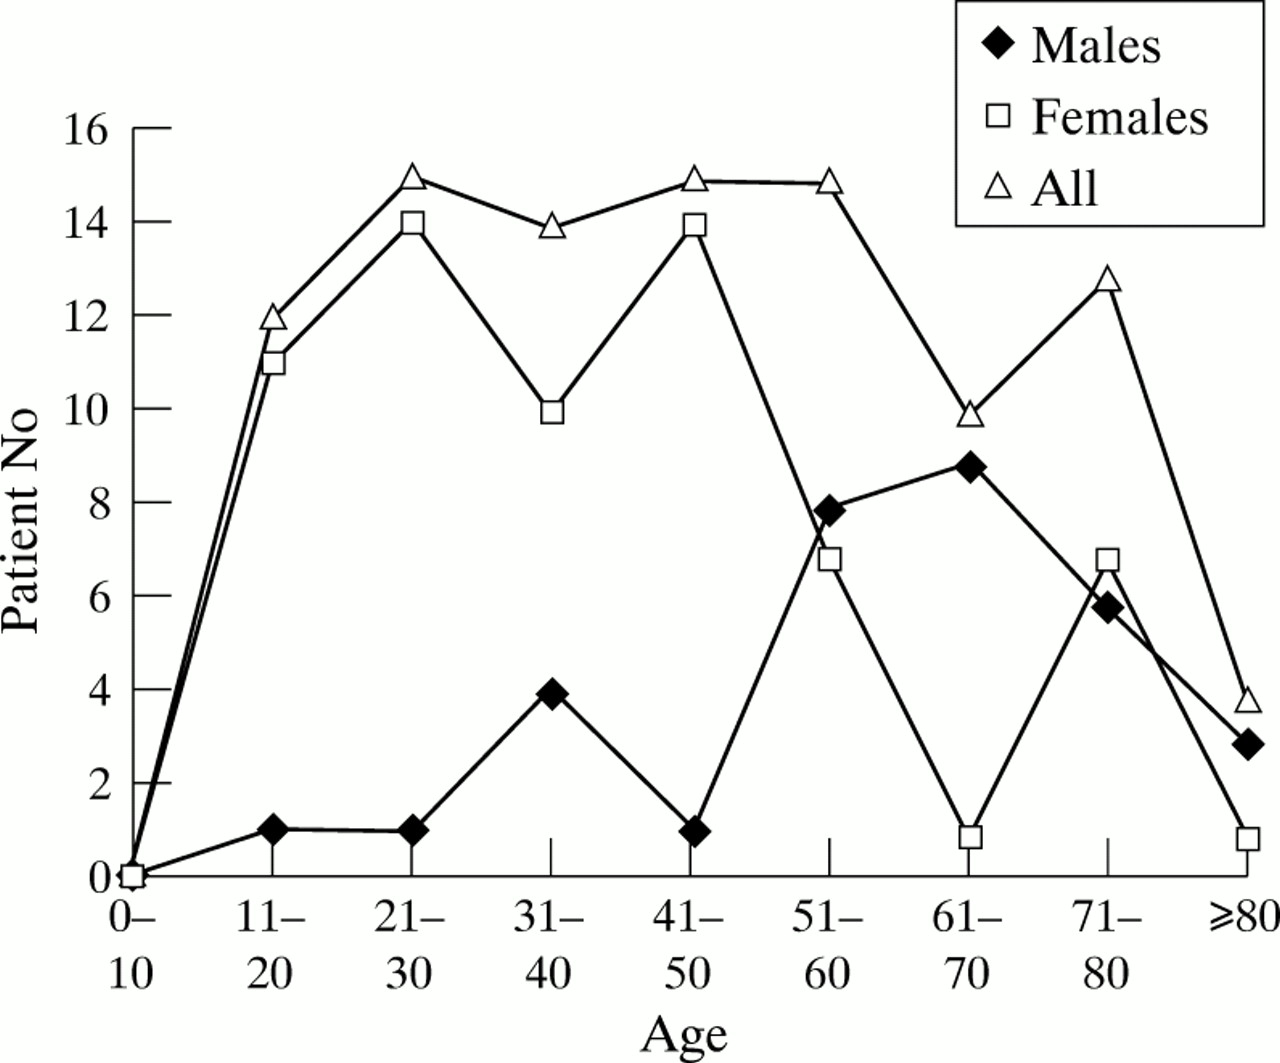 A bimodal pattern of age at onset was seen in females peaking at 21?50 and ...